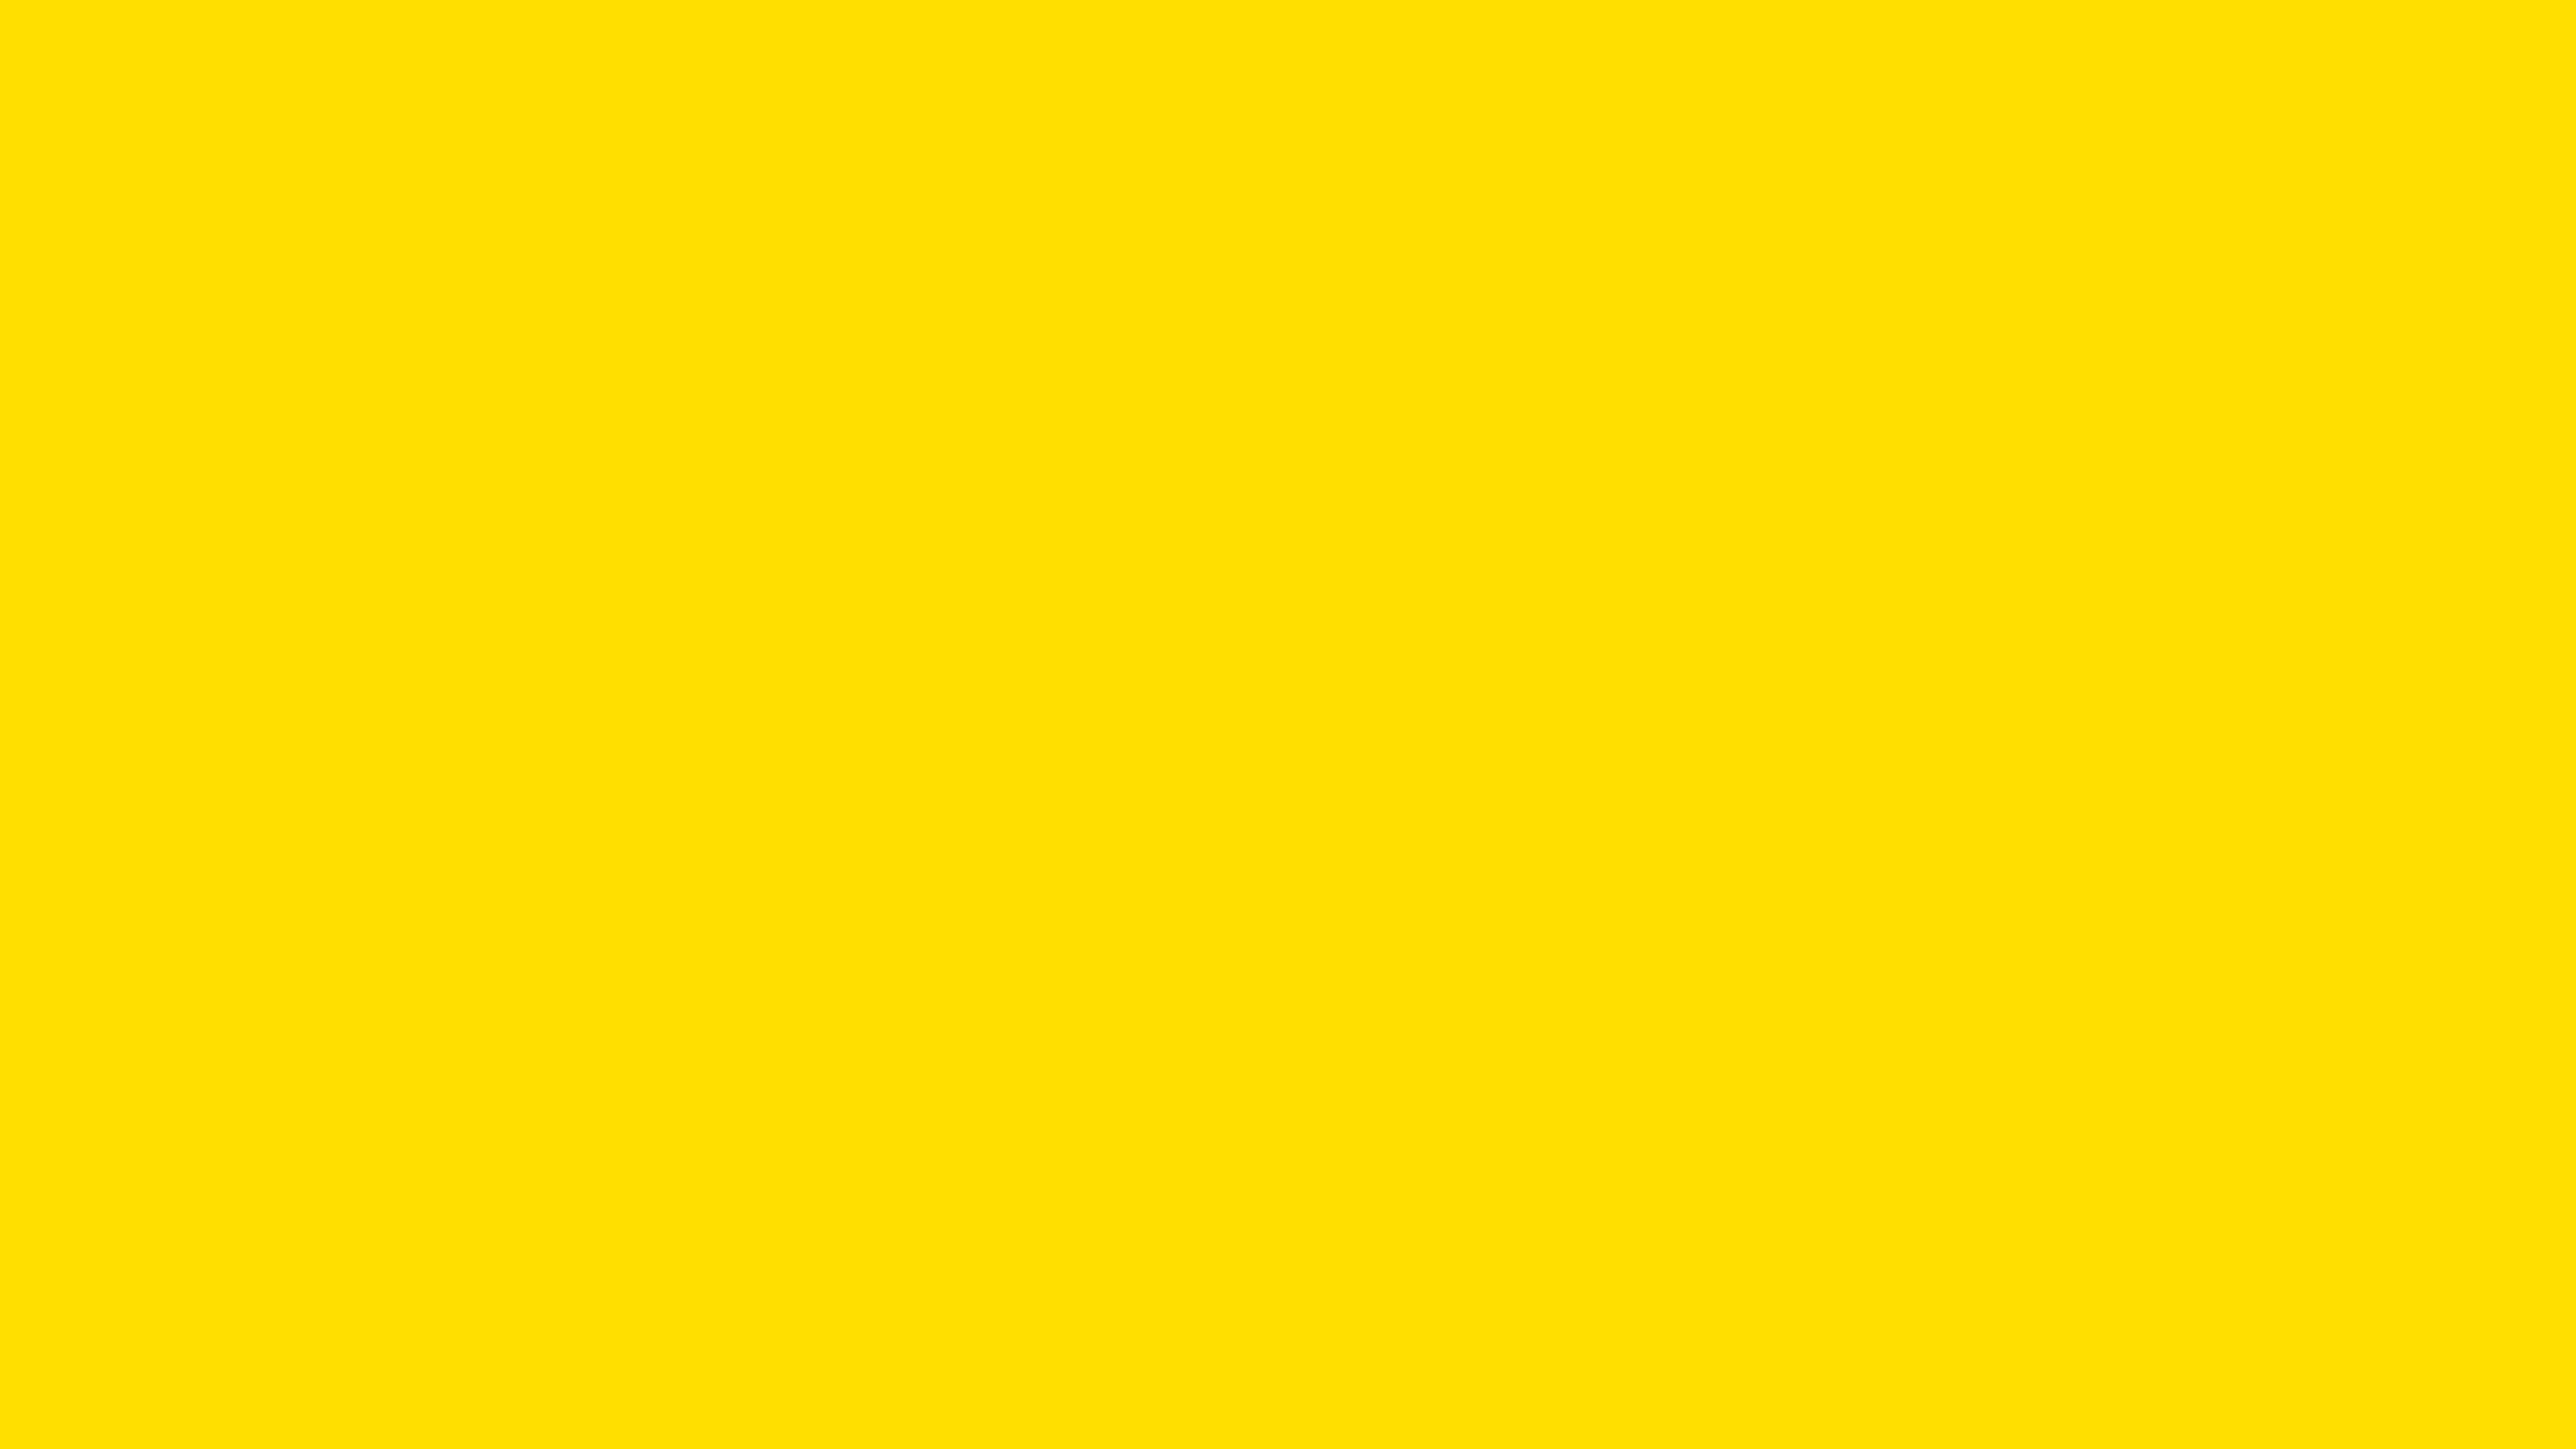 7680x4320 Yellow Pantone Solid Color Background